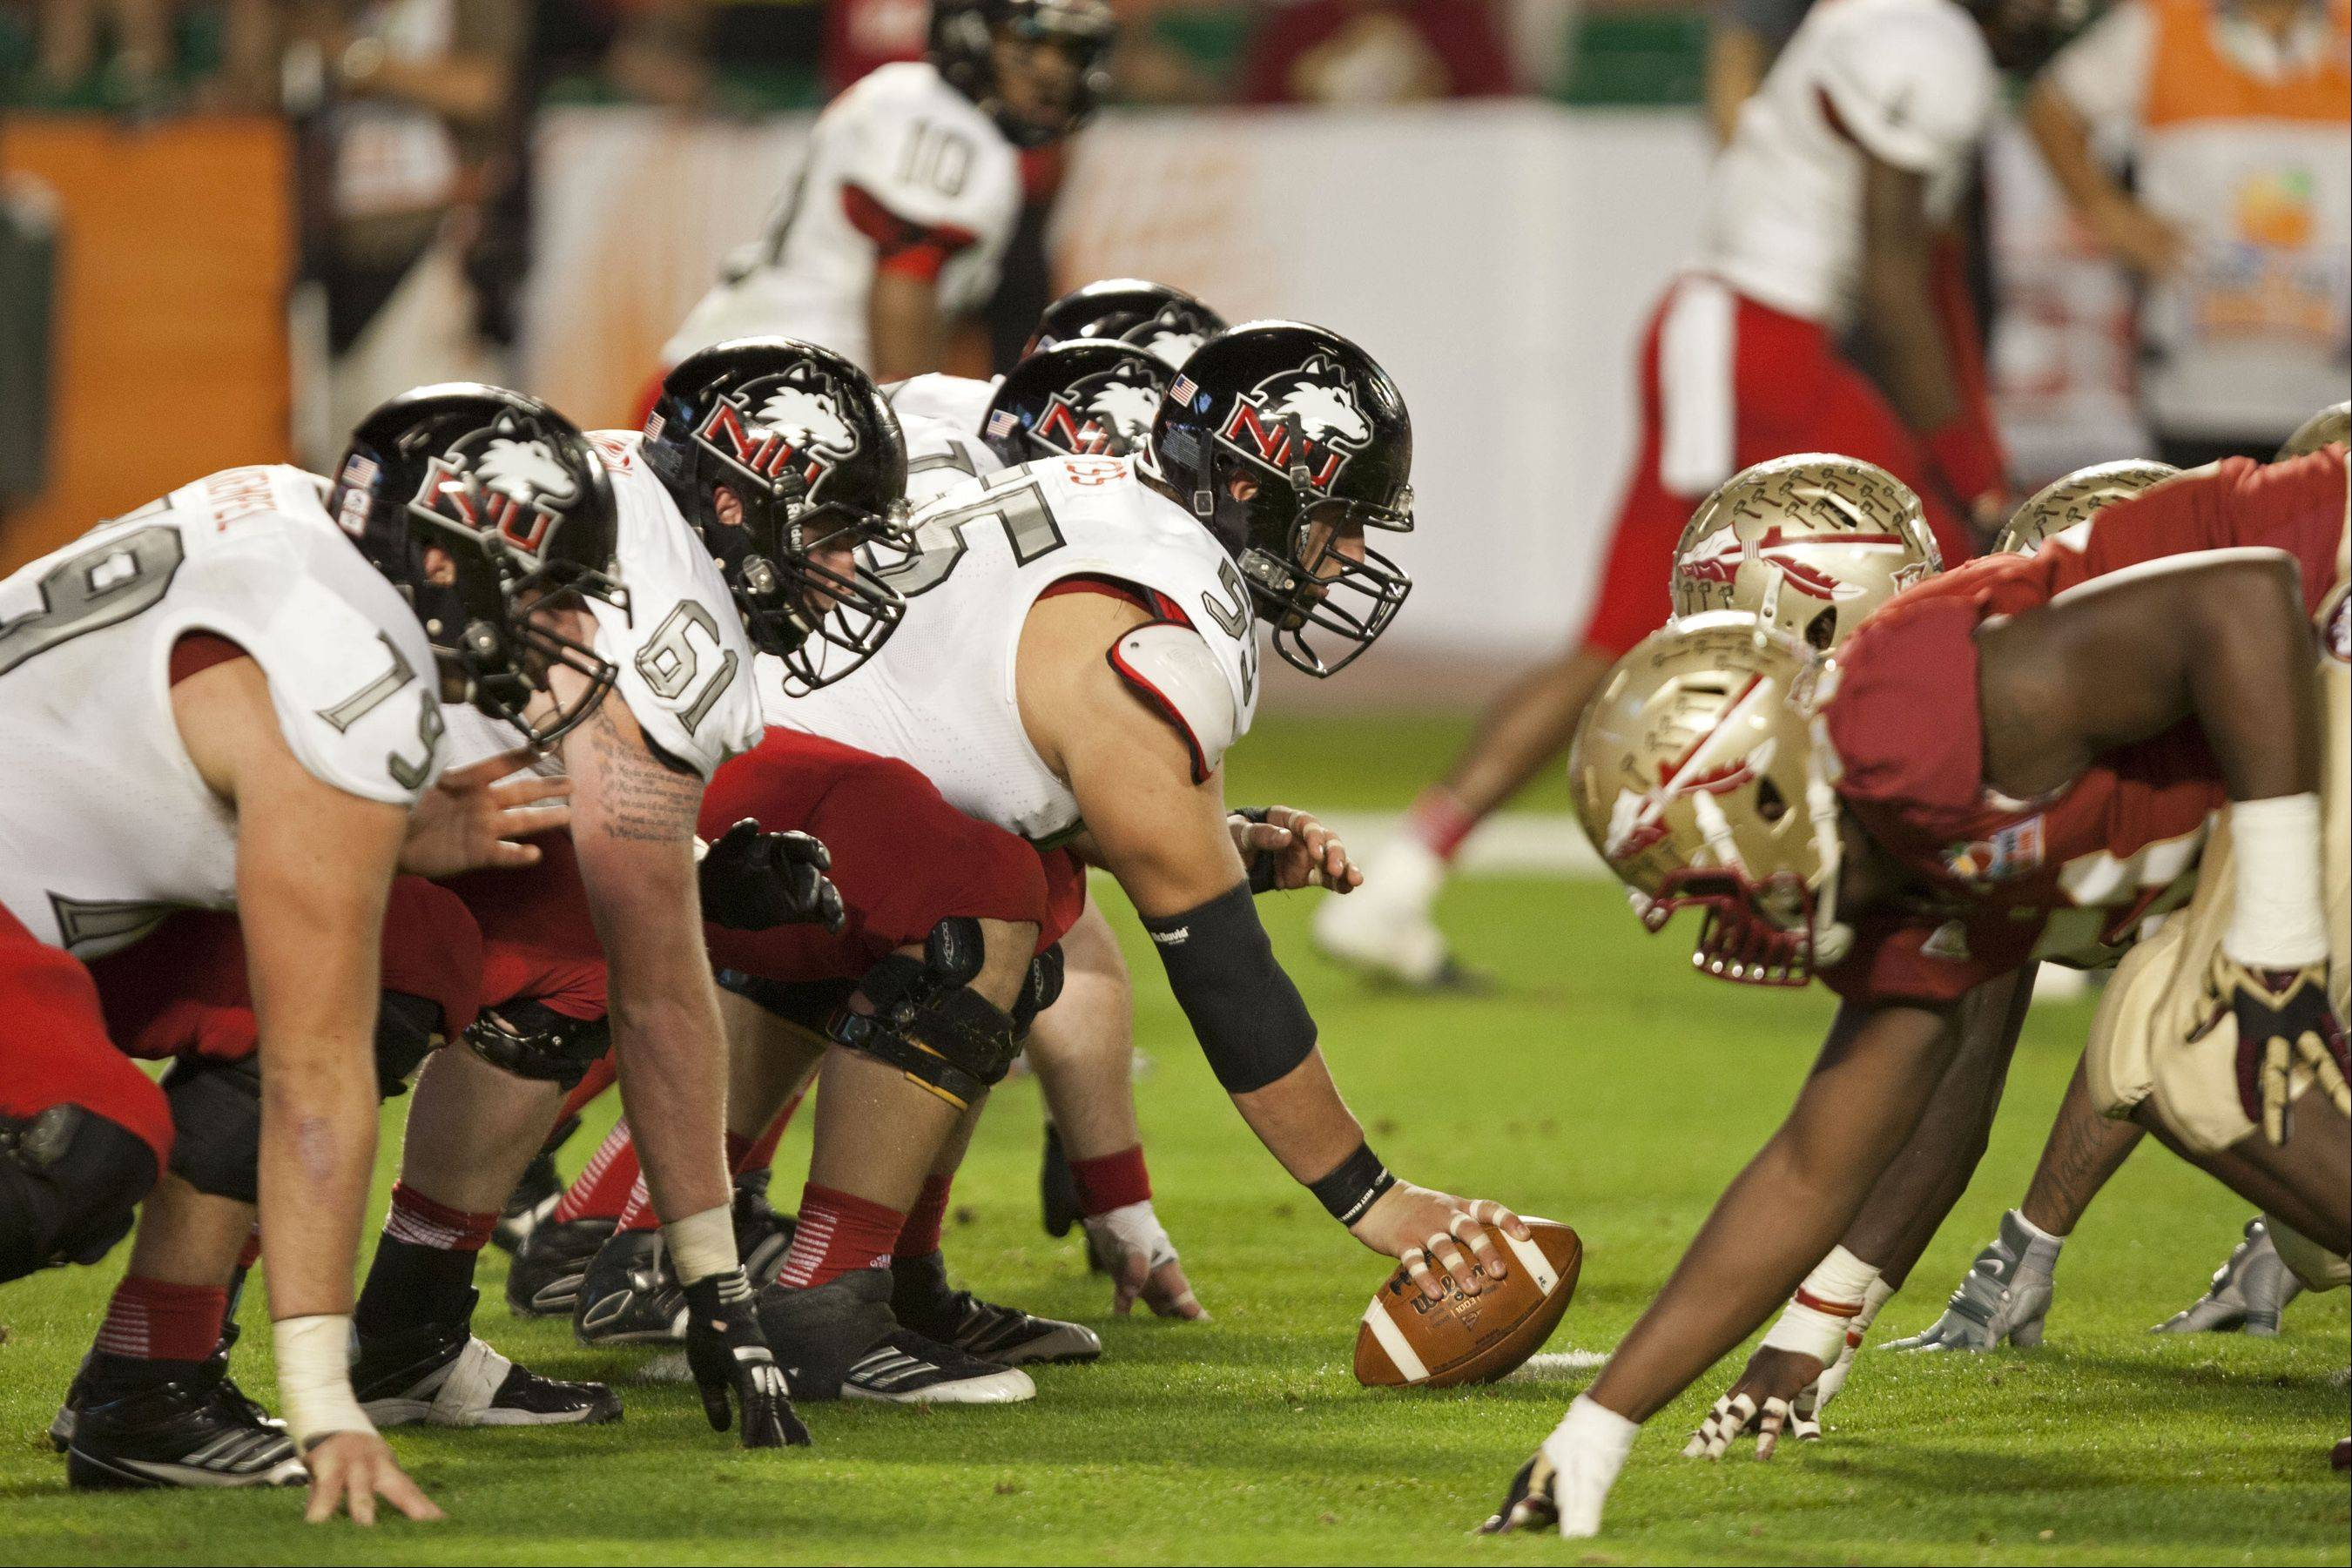 The entire offensive line for Northern Illinois University will be back next season to block for quarterback Jordan Lynch. The Huskie also lose only 5 starters on defense.